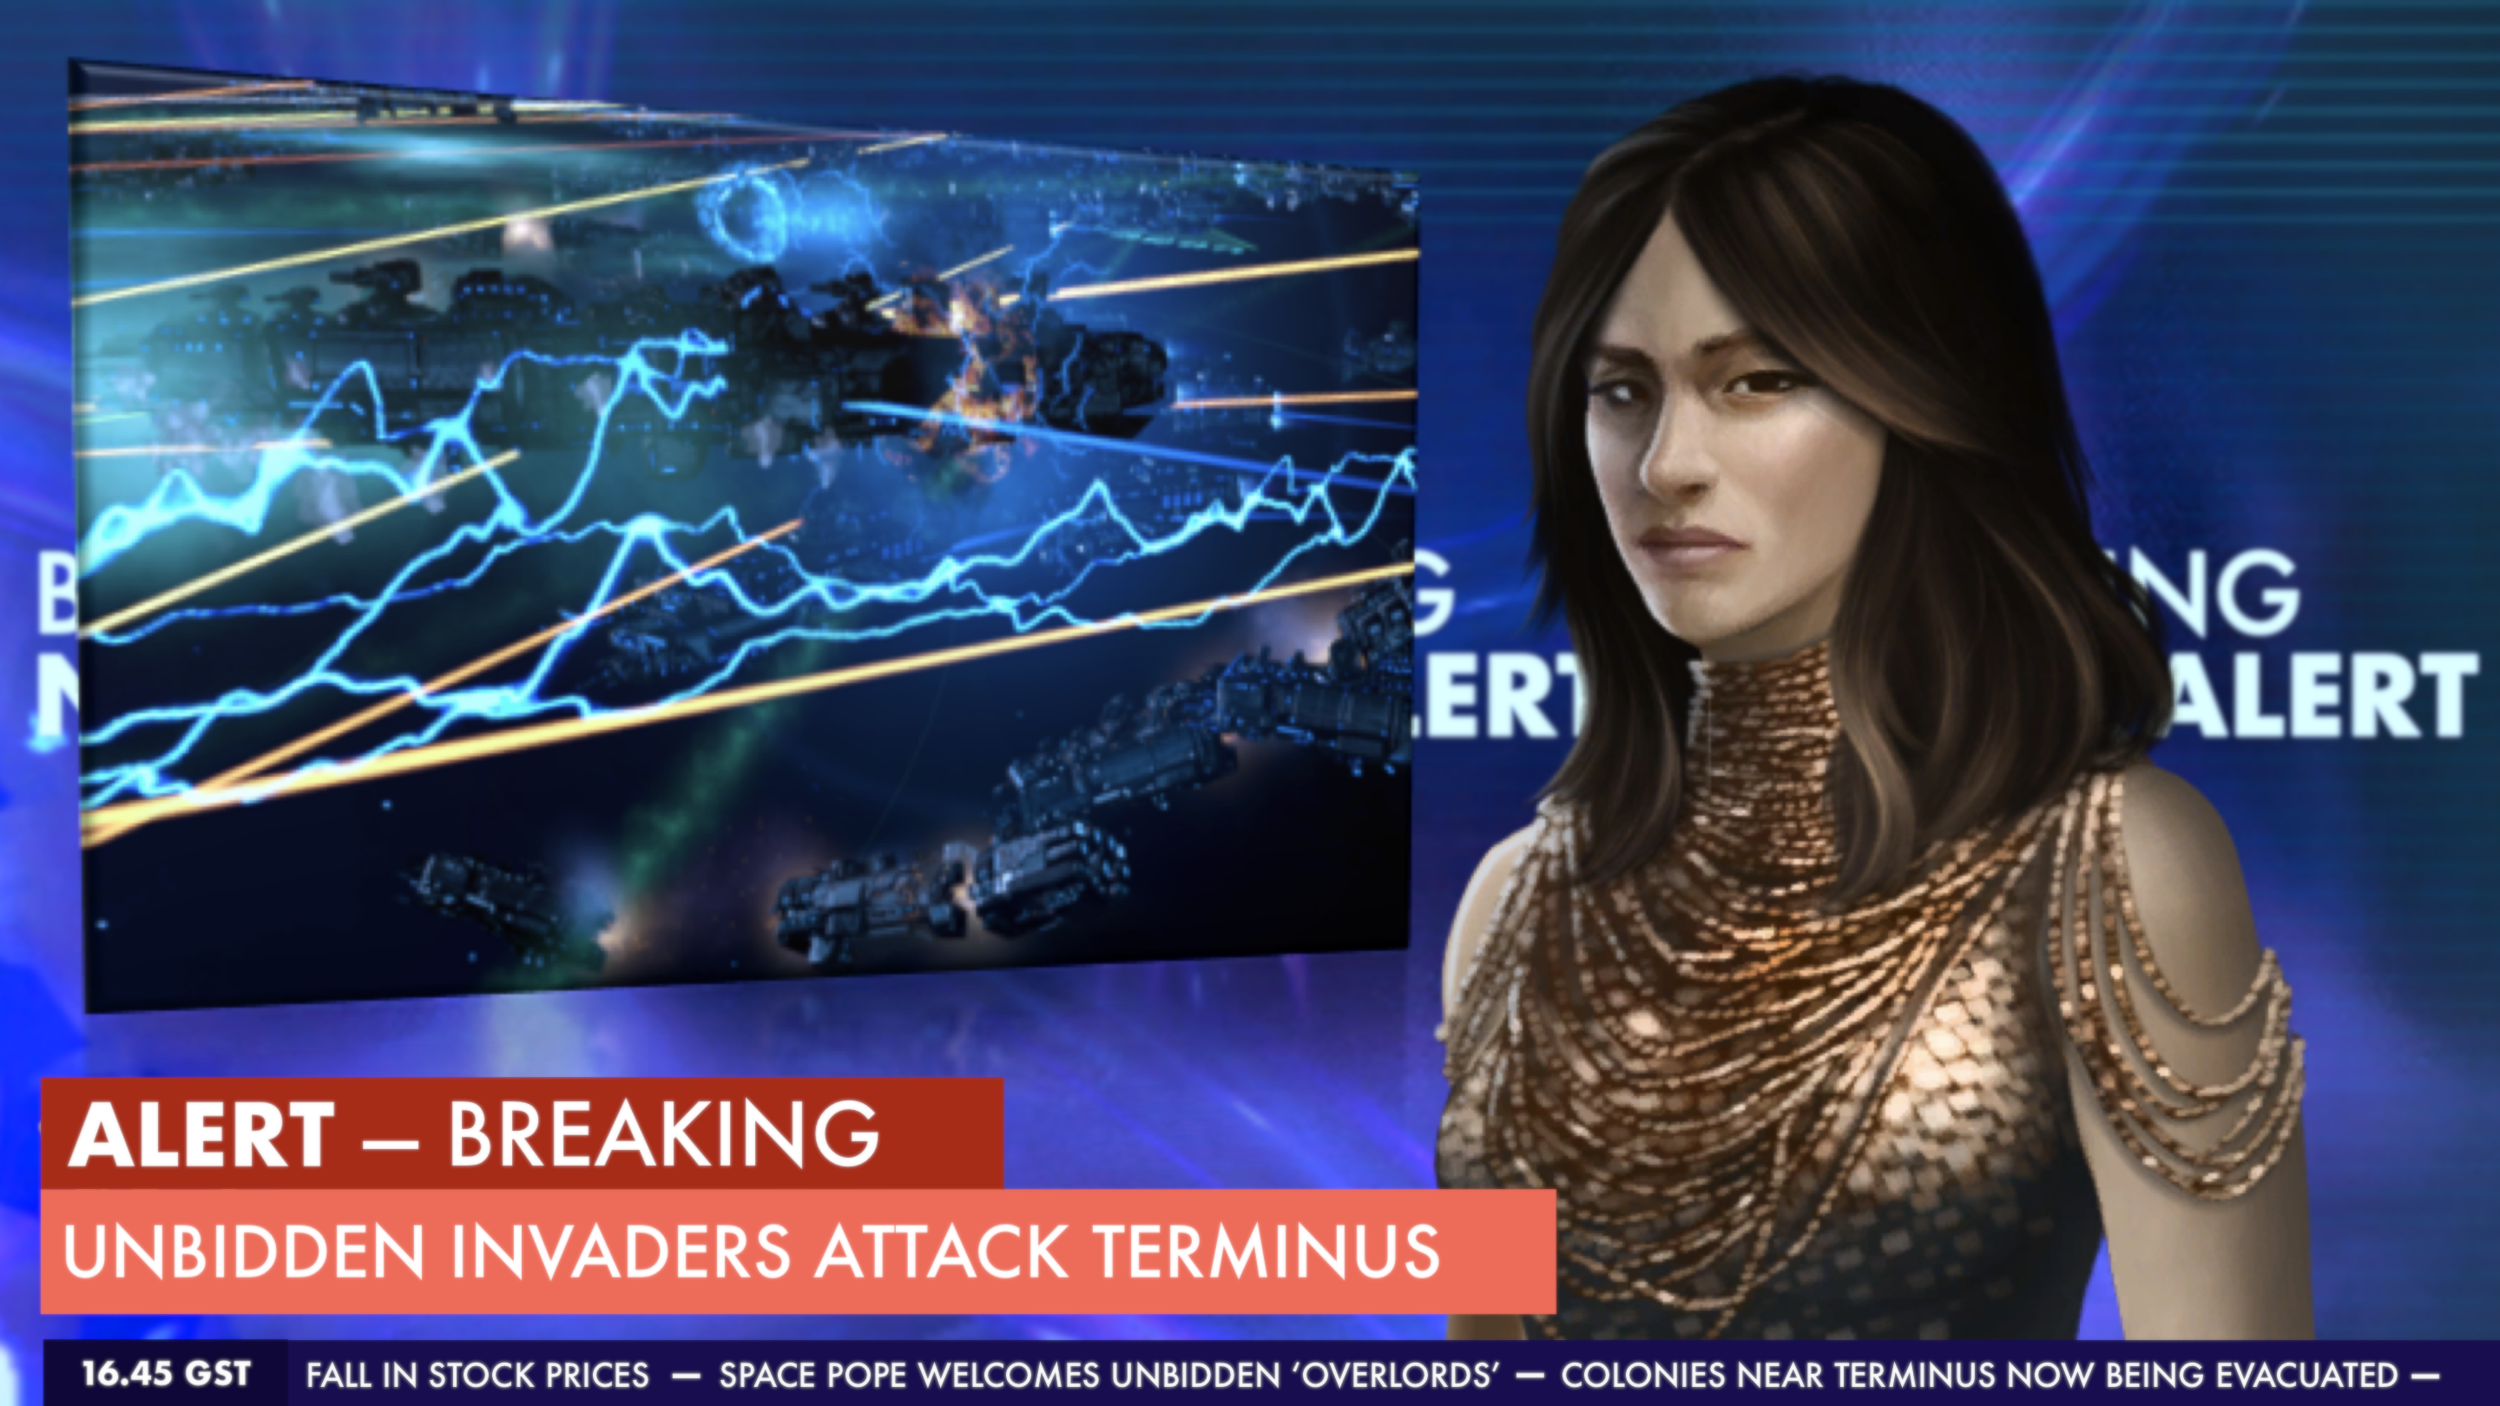 Image: Breaking news alert - Unbidden invaders attack Terminus.